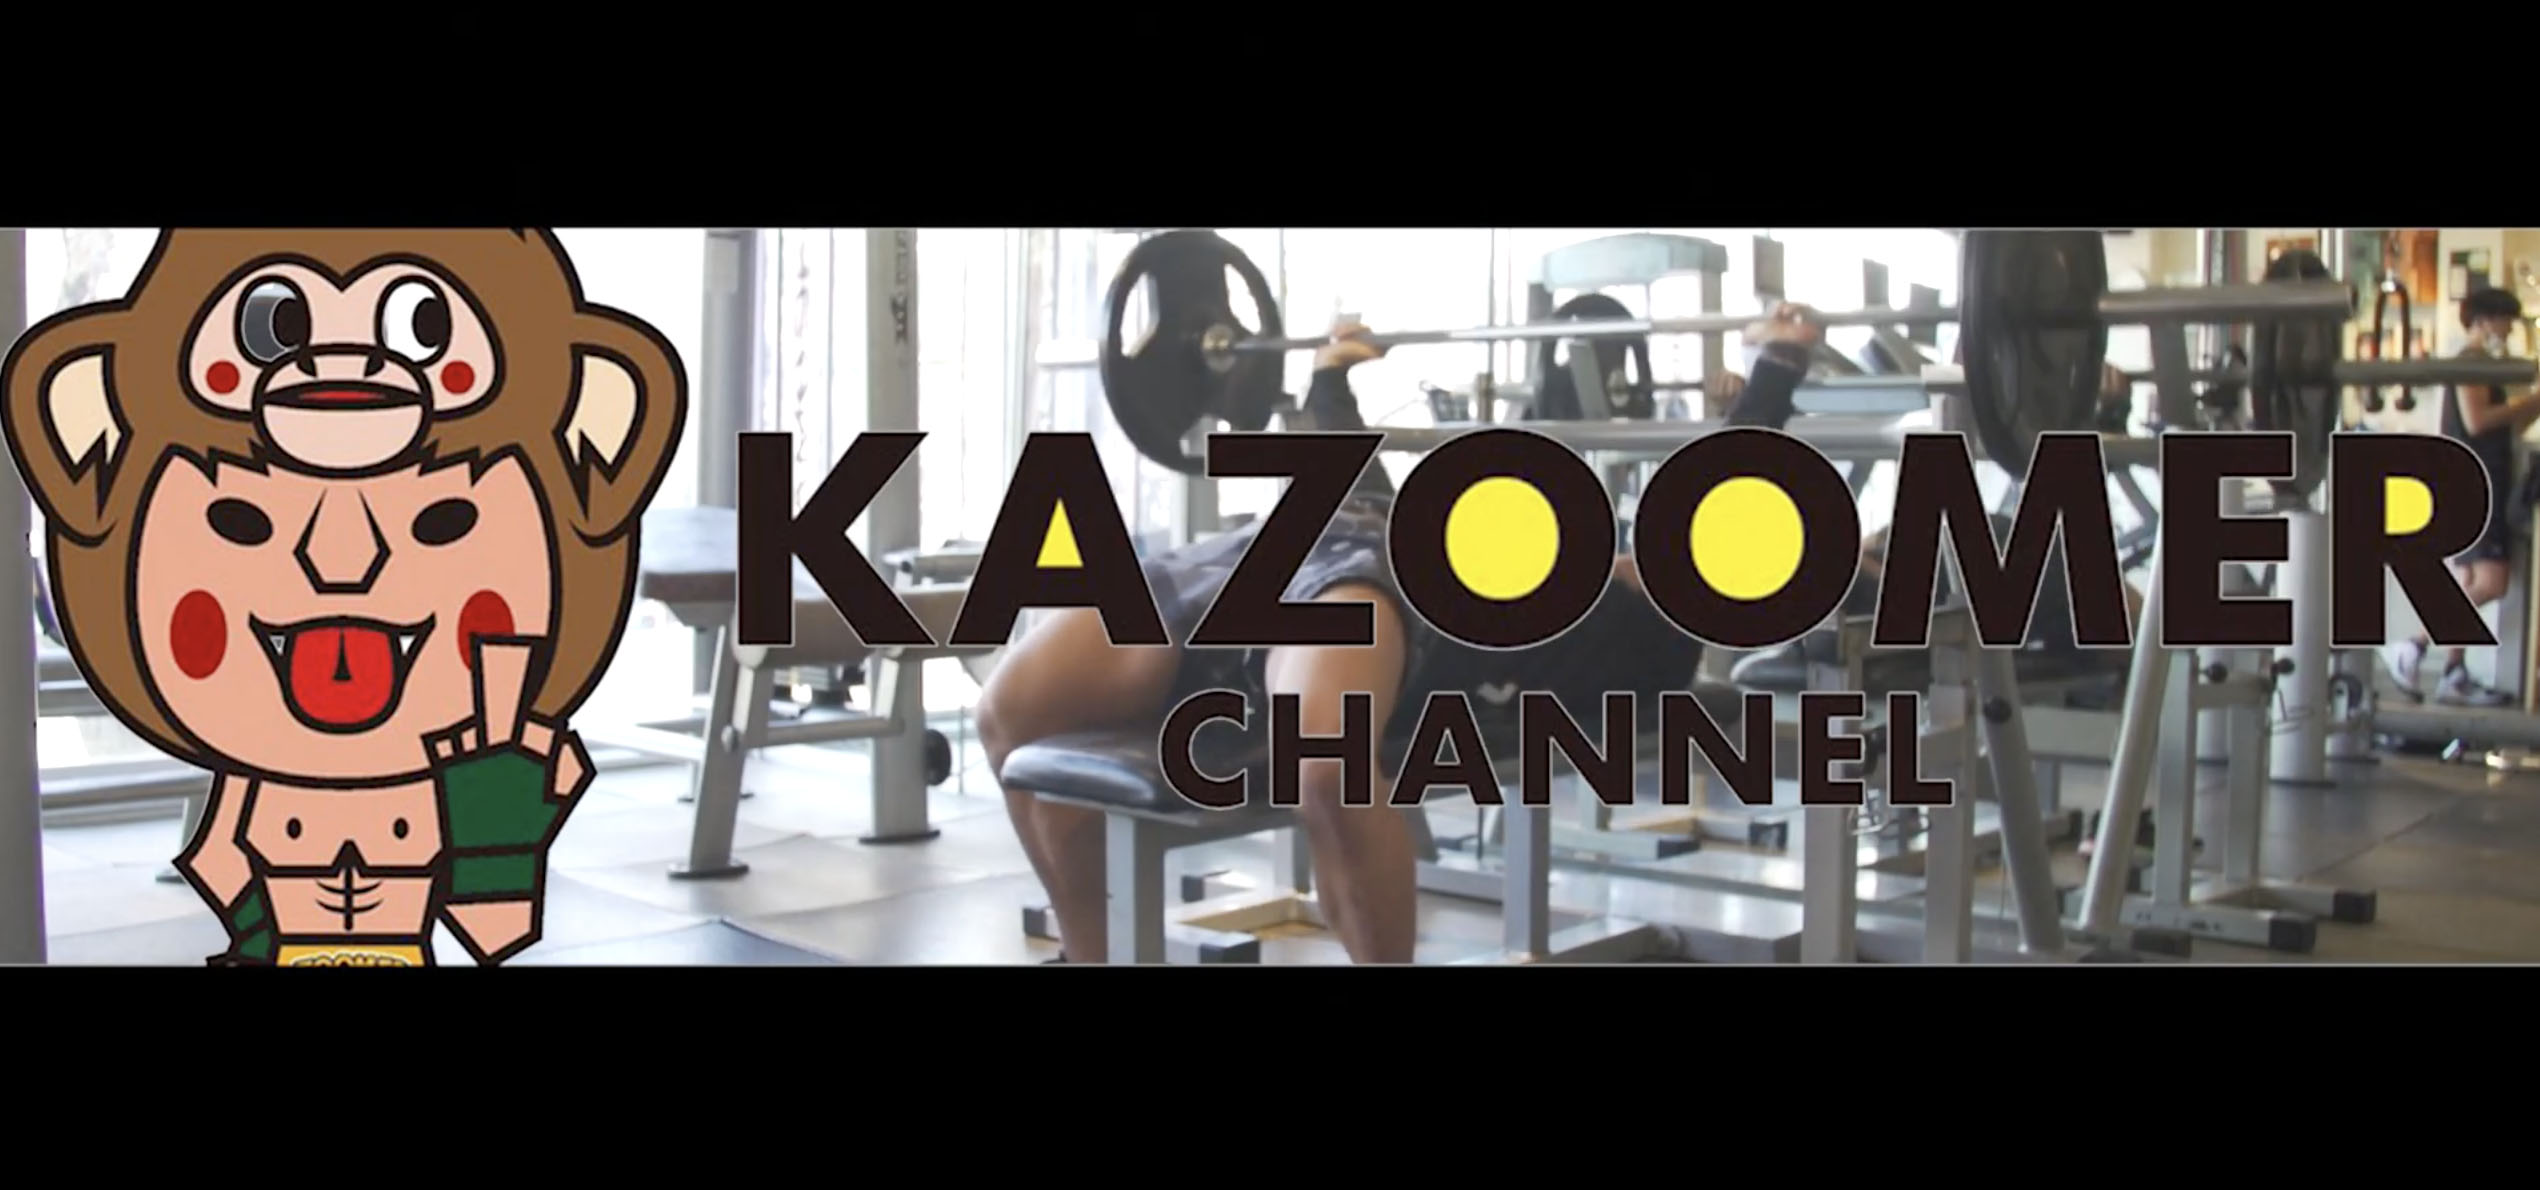 KAZOOMER CHANNEL